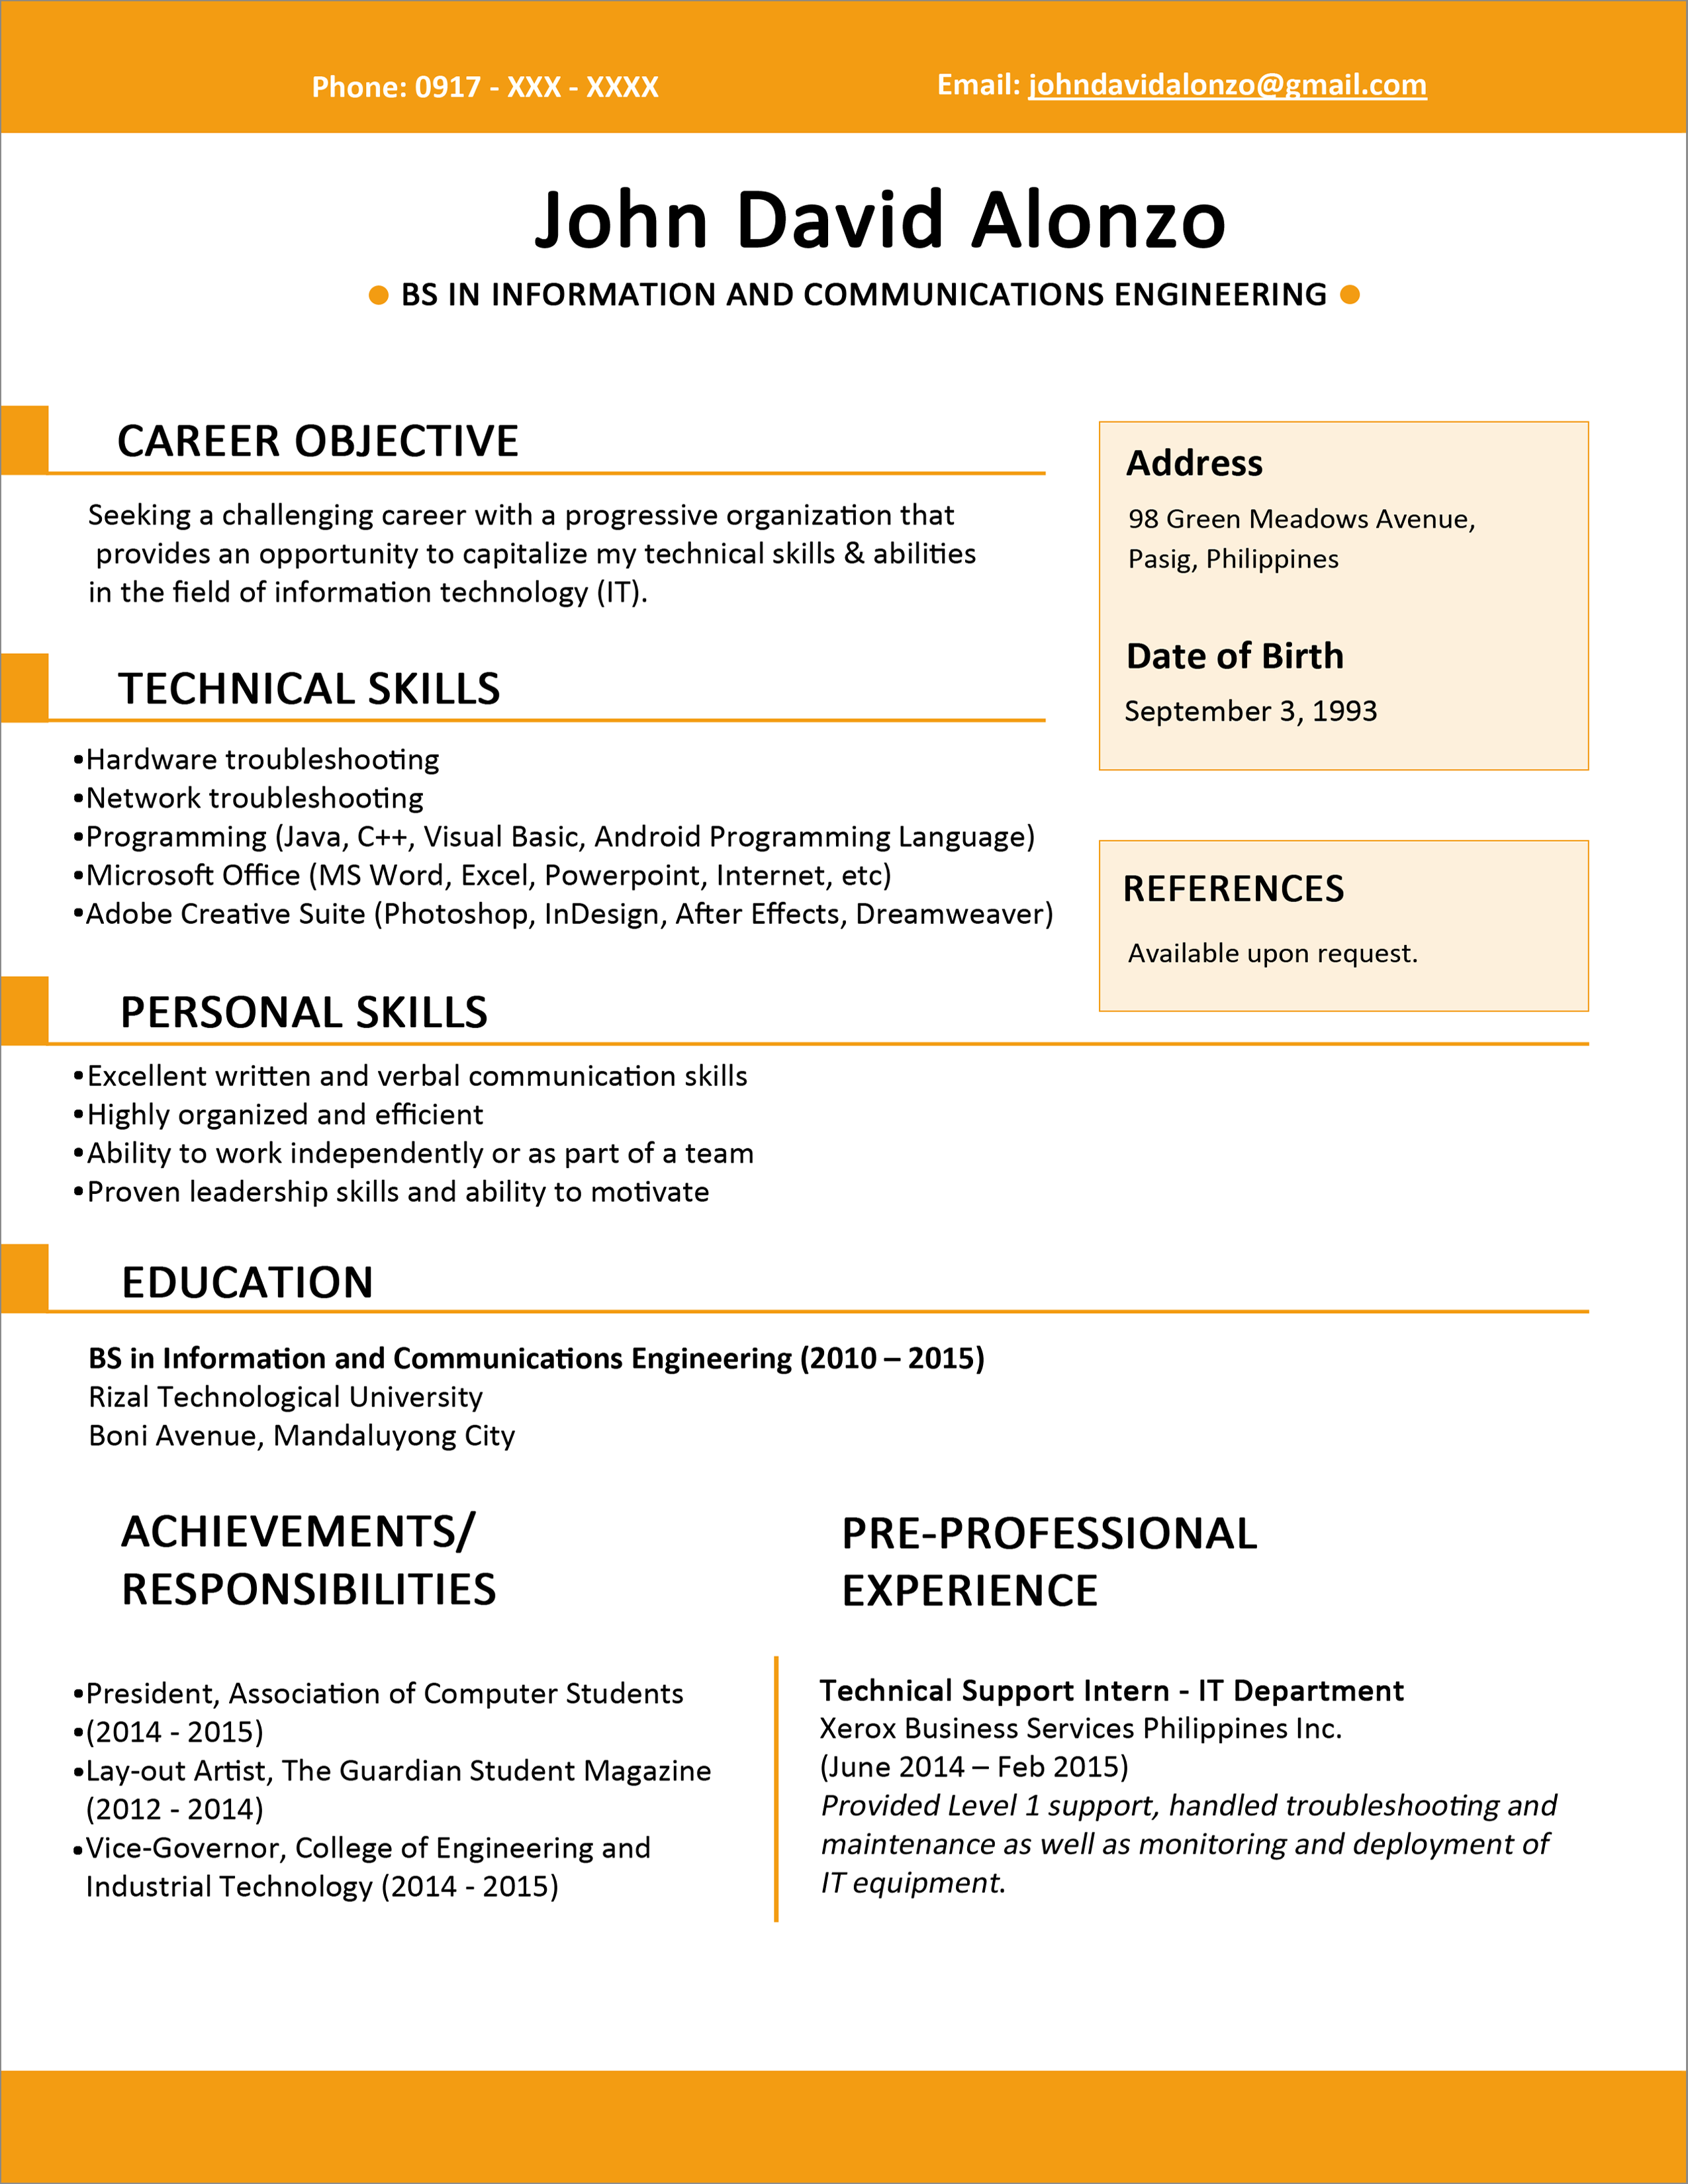 Simple And Basic Resume Templates For All Jobseekers  Wisestep